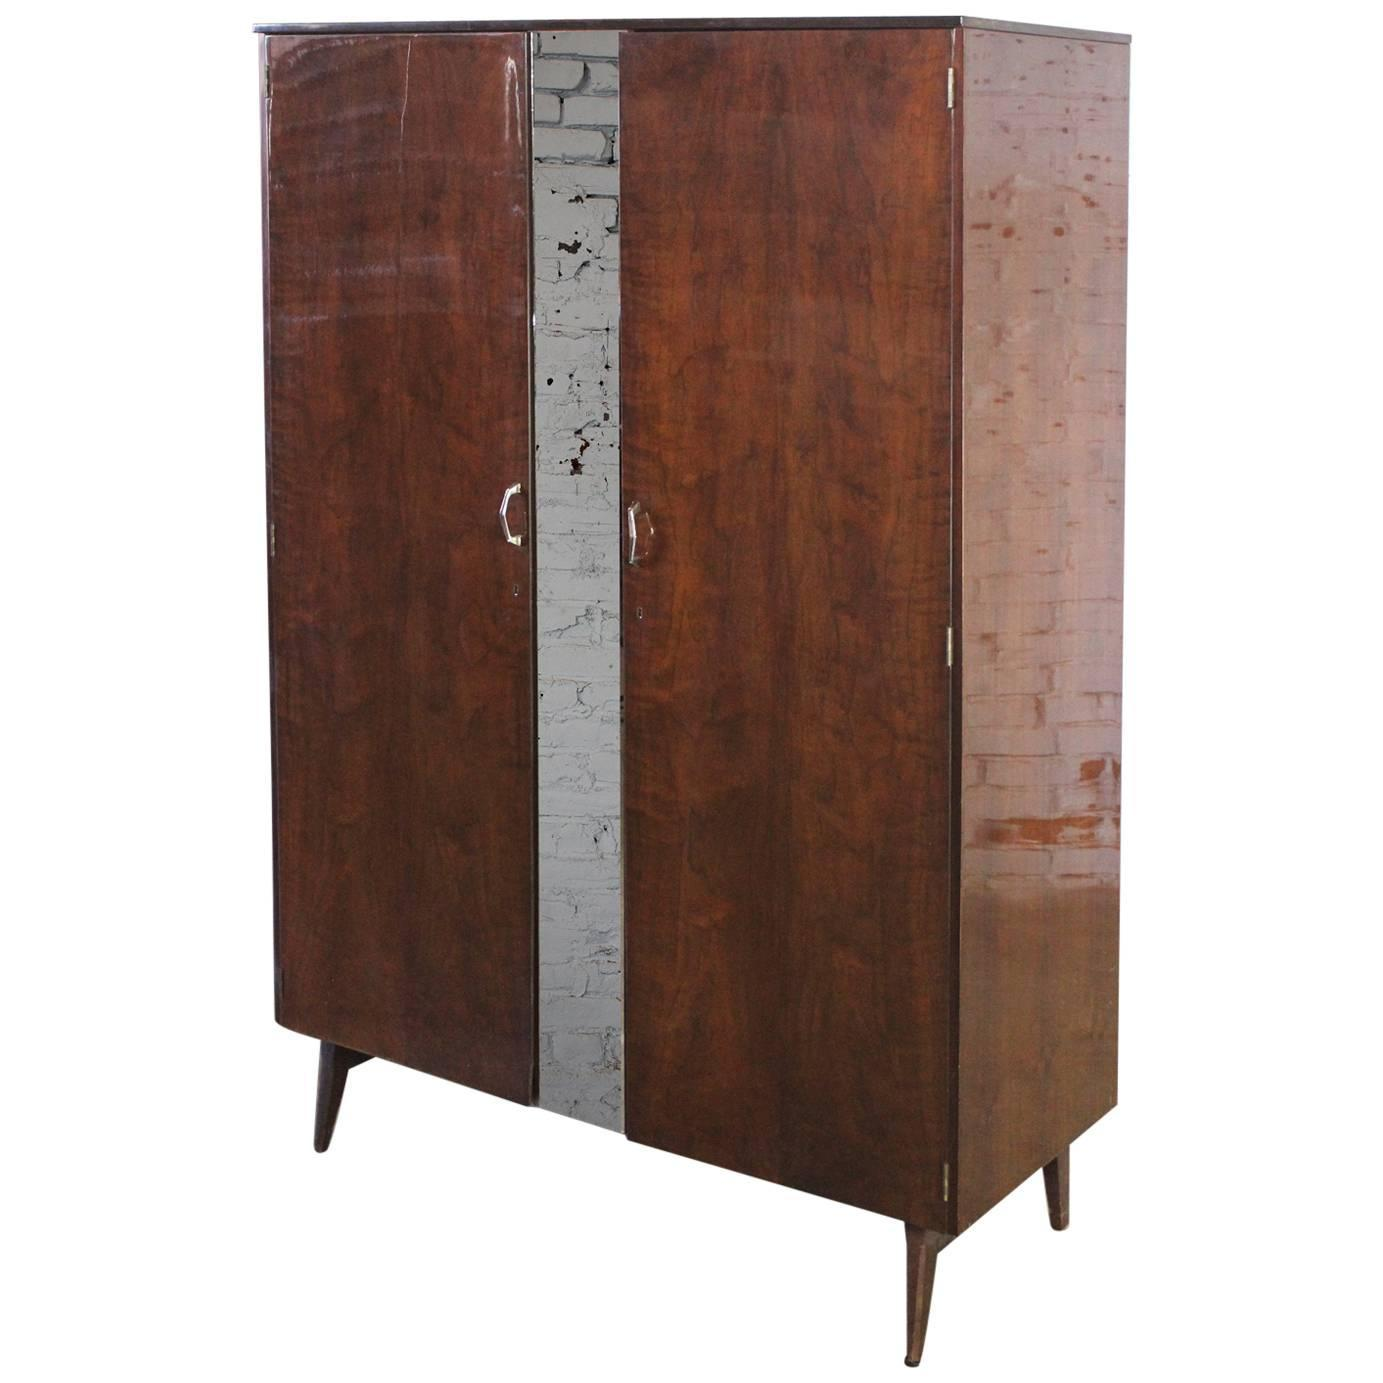 mid century modern tola wardrobe by alphons loebenstein. Black Bedroom Furniture Sets. Home Design Ideas